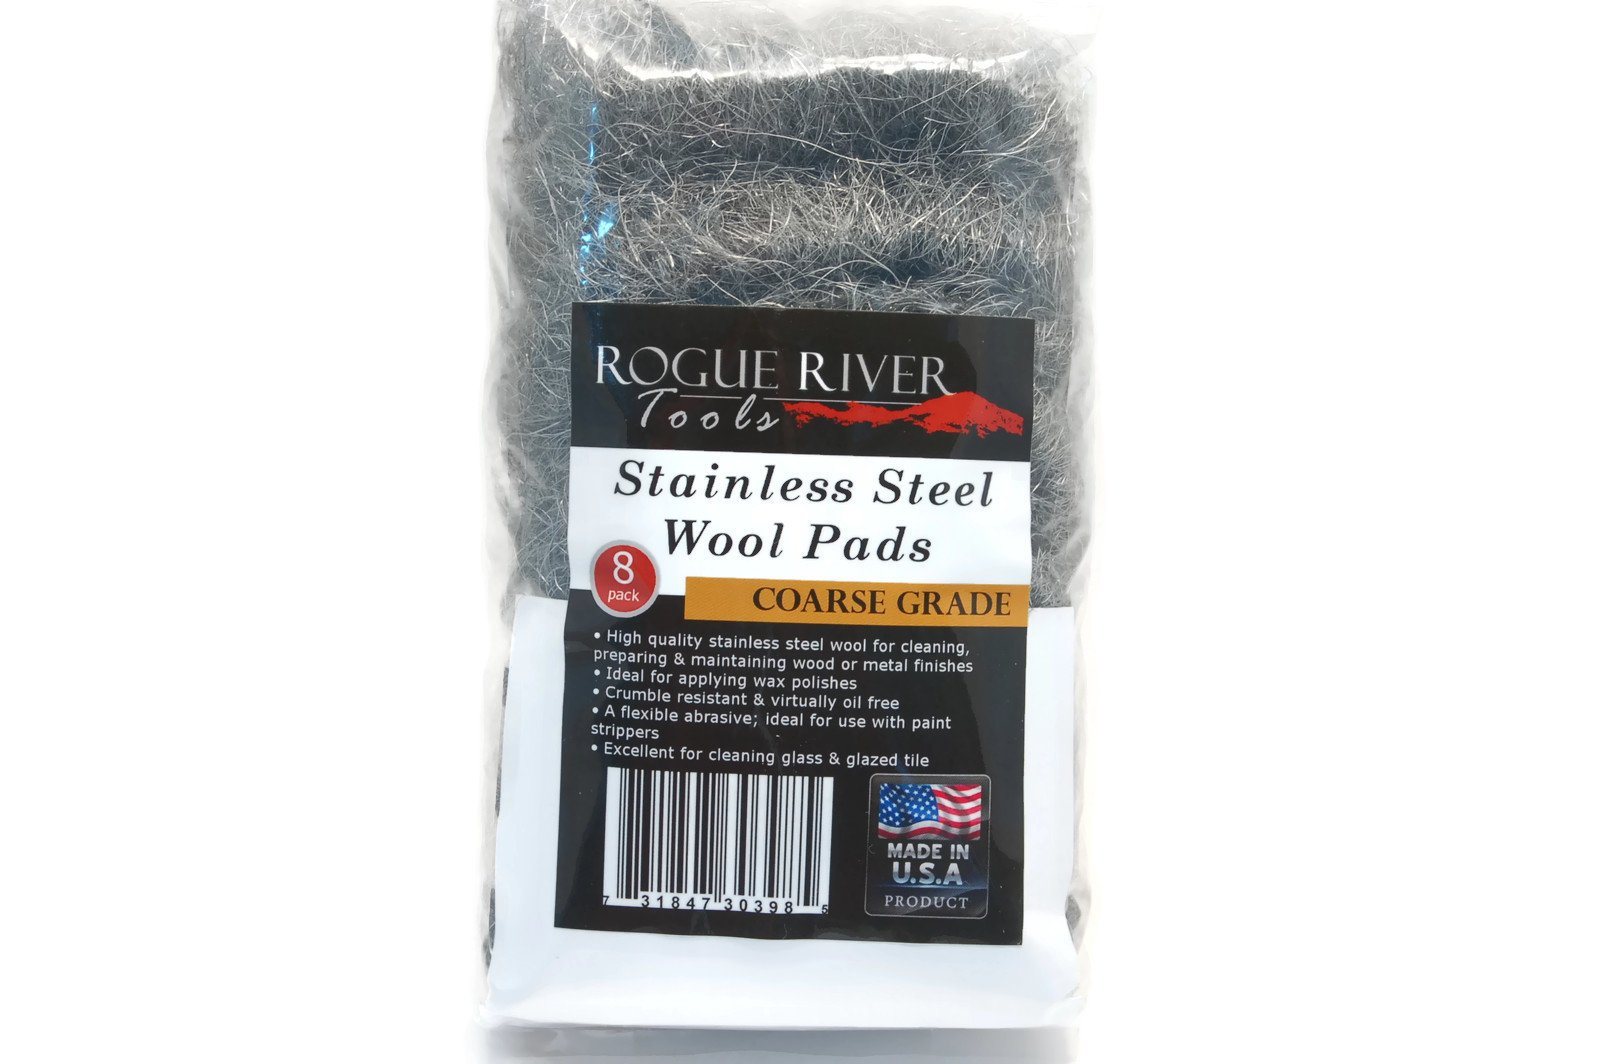 Stainless Steel Wool 8 Pad Pack (Coarse) Oil Free Manufacturing - Made in USA! by Rogue River Tools